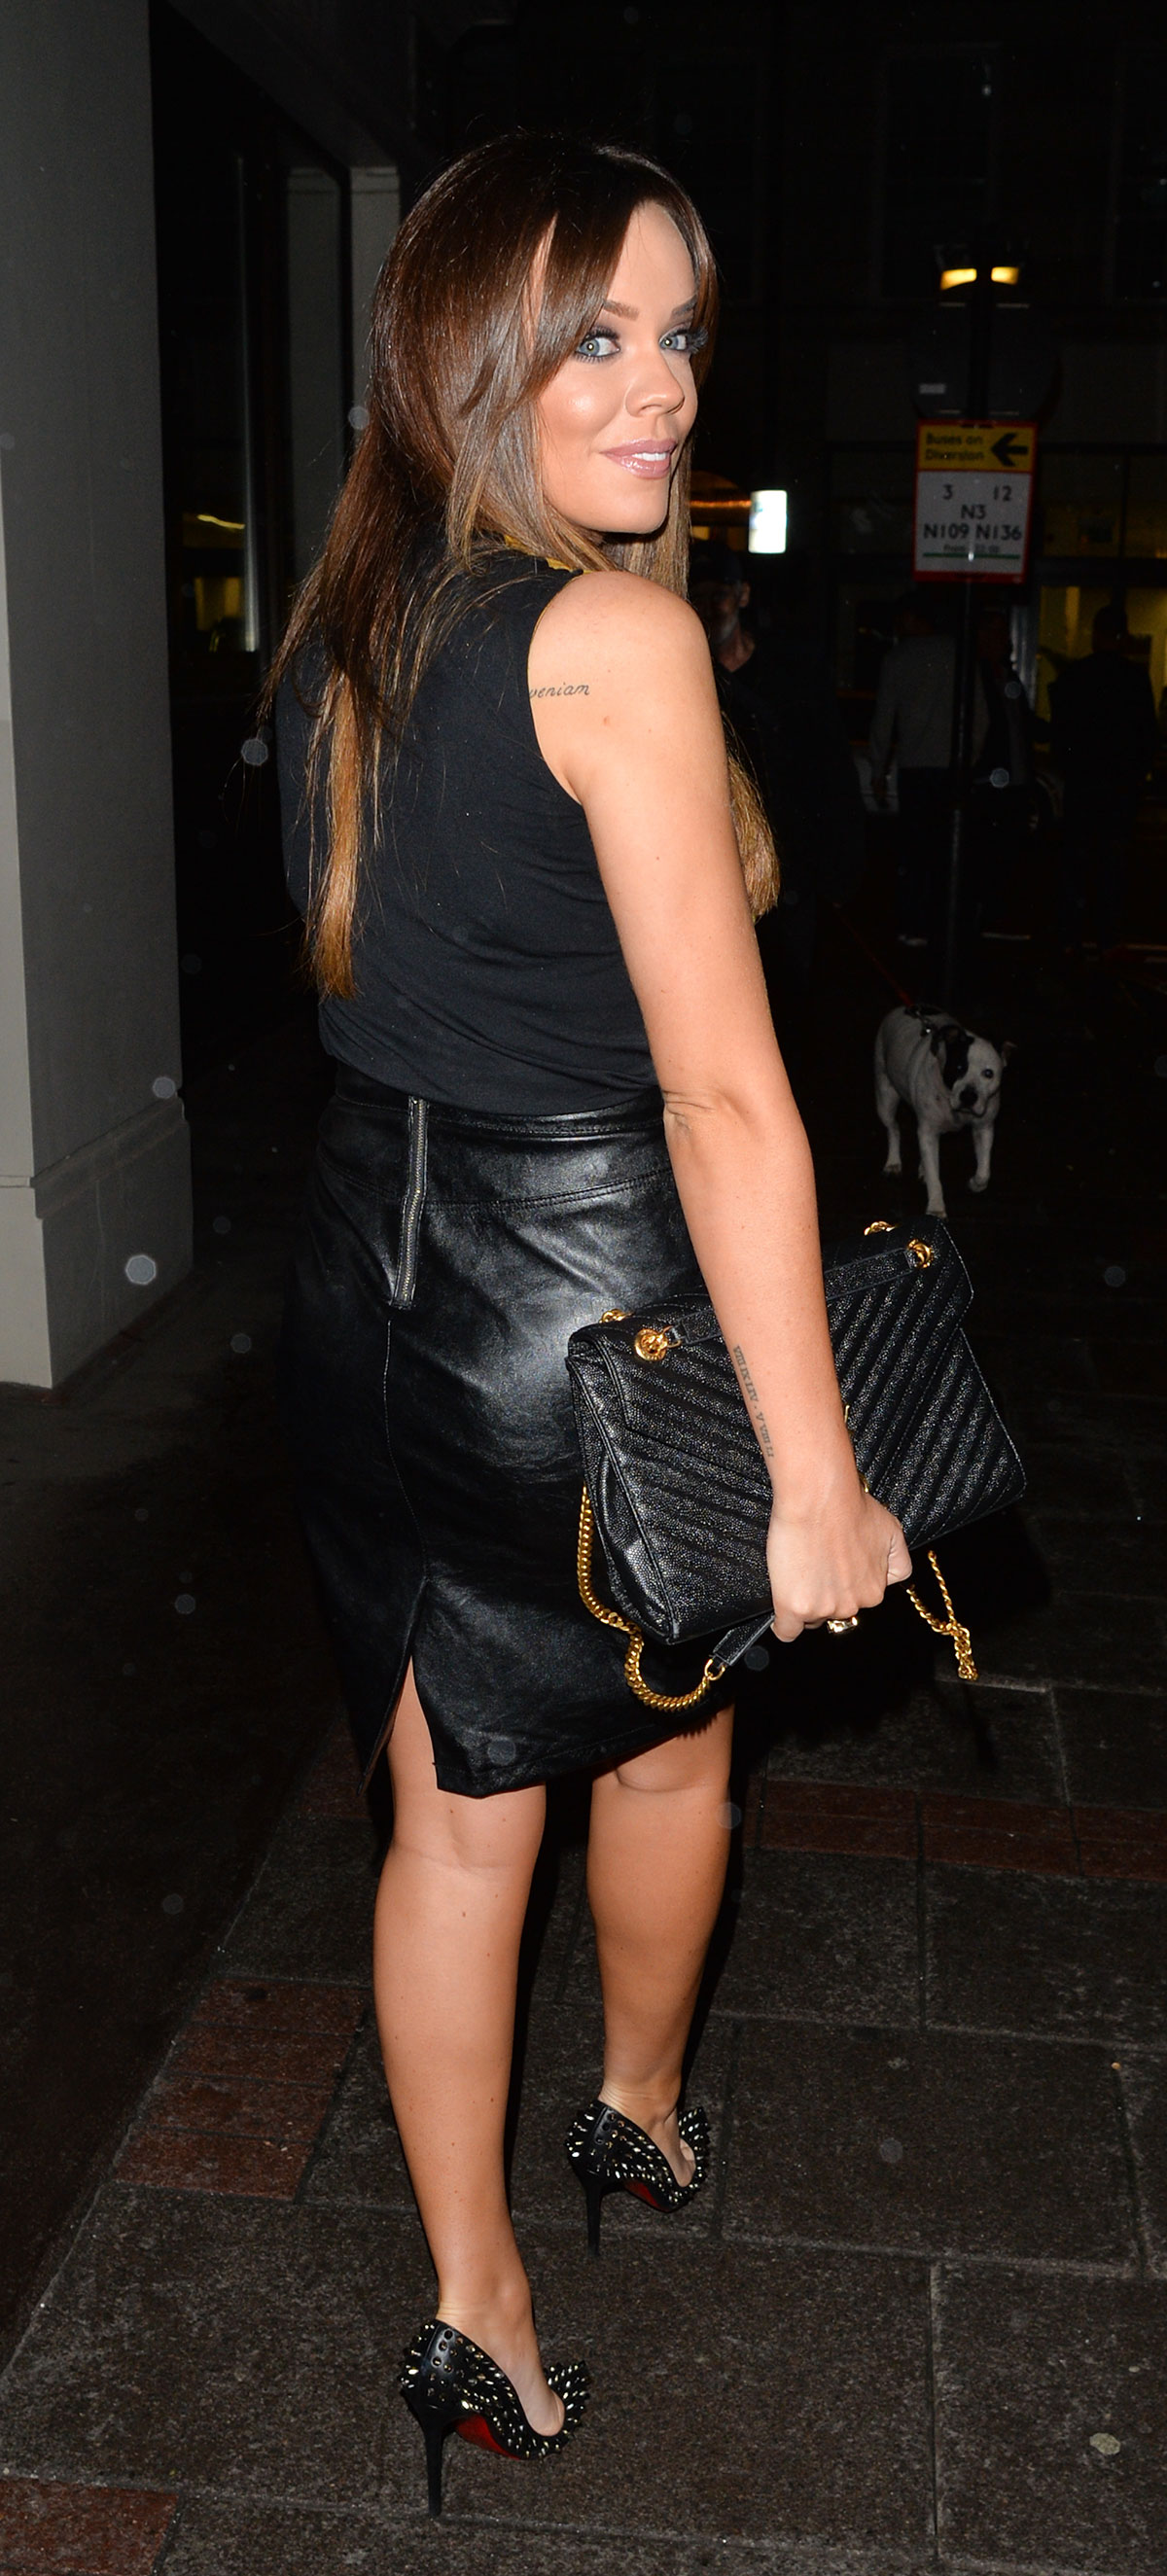 Maria Fowler was spotted with Chloe Goodman leaving Novikov